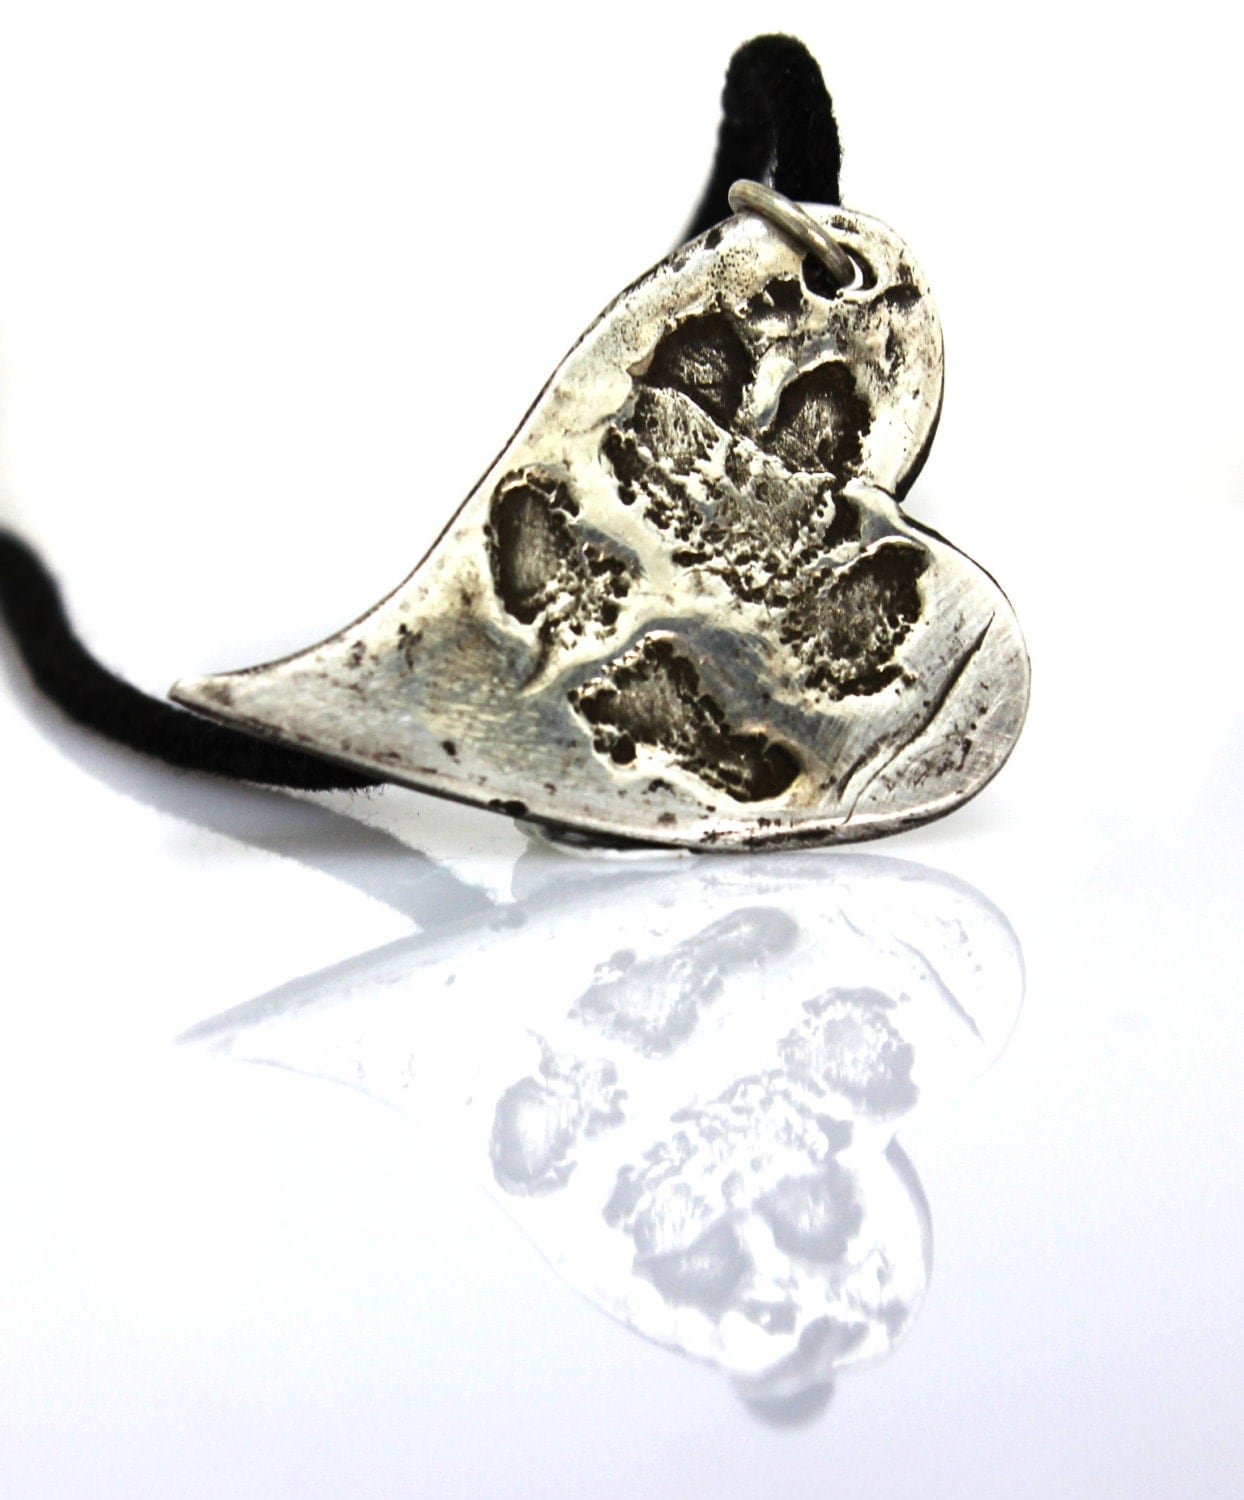 Dog cat custom paw print necklace - handmade fine silver paw print pendant from your pets print - animal lover gift - pet memorial jewellery